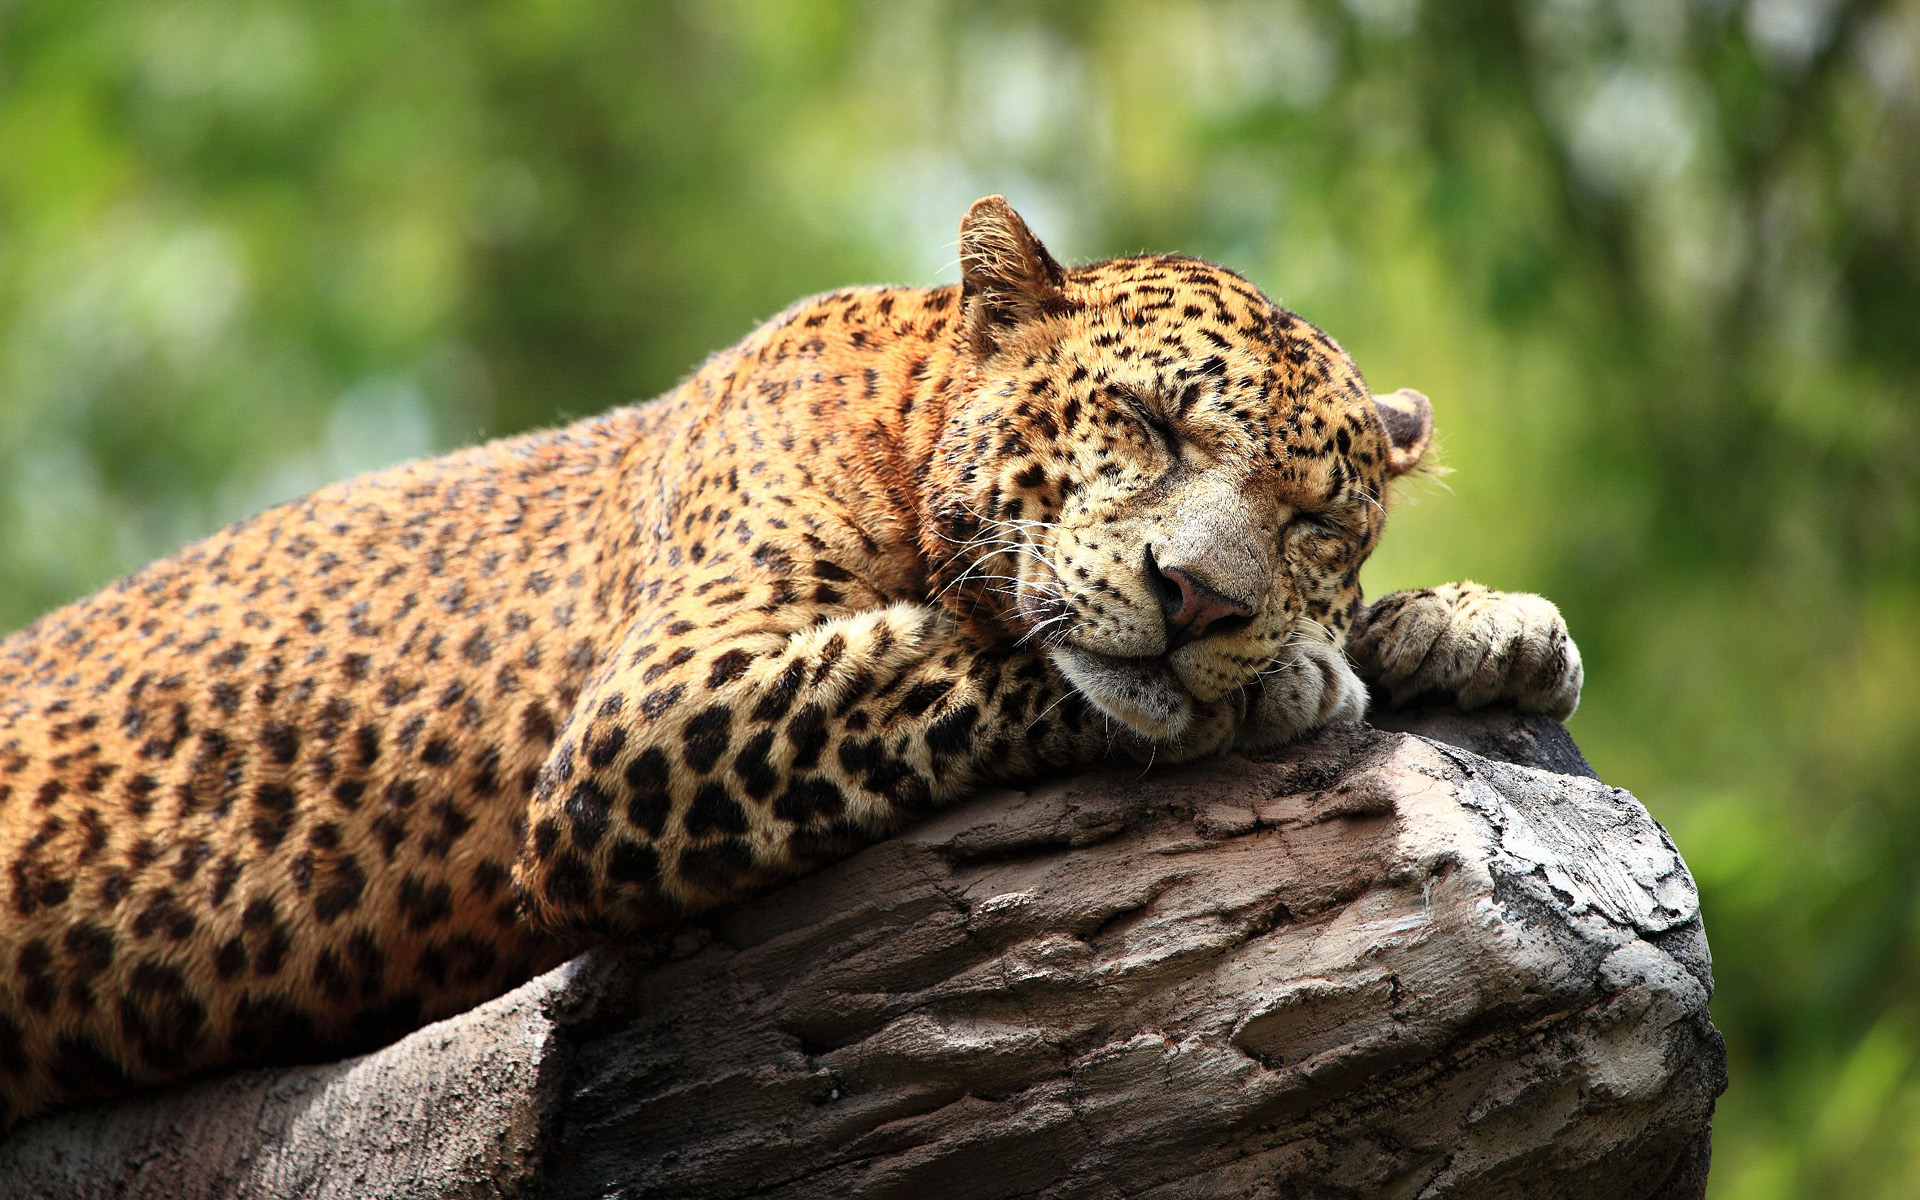 The portrait of a Leopard has been made to Bali in September, 2009